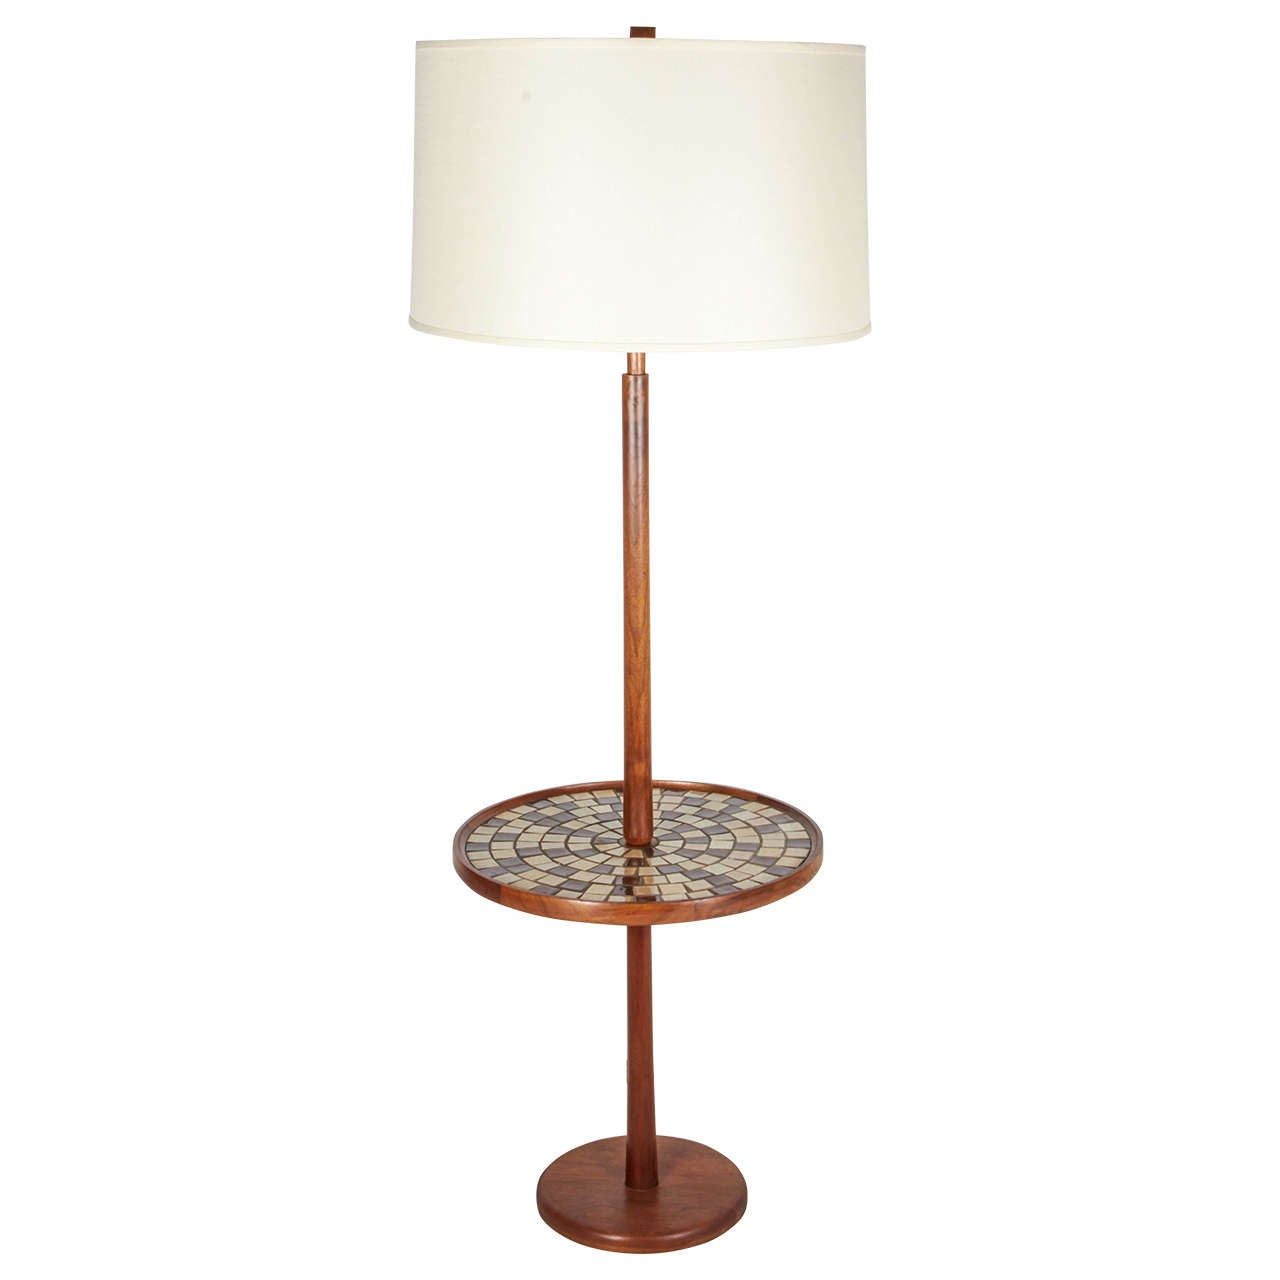 Beautiful Floor Lamp by Jane and Gordon Martz for Marshall Studios